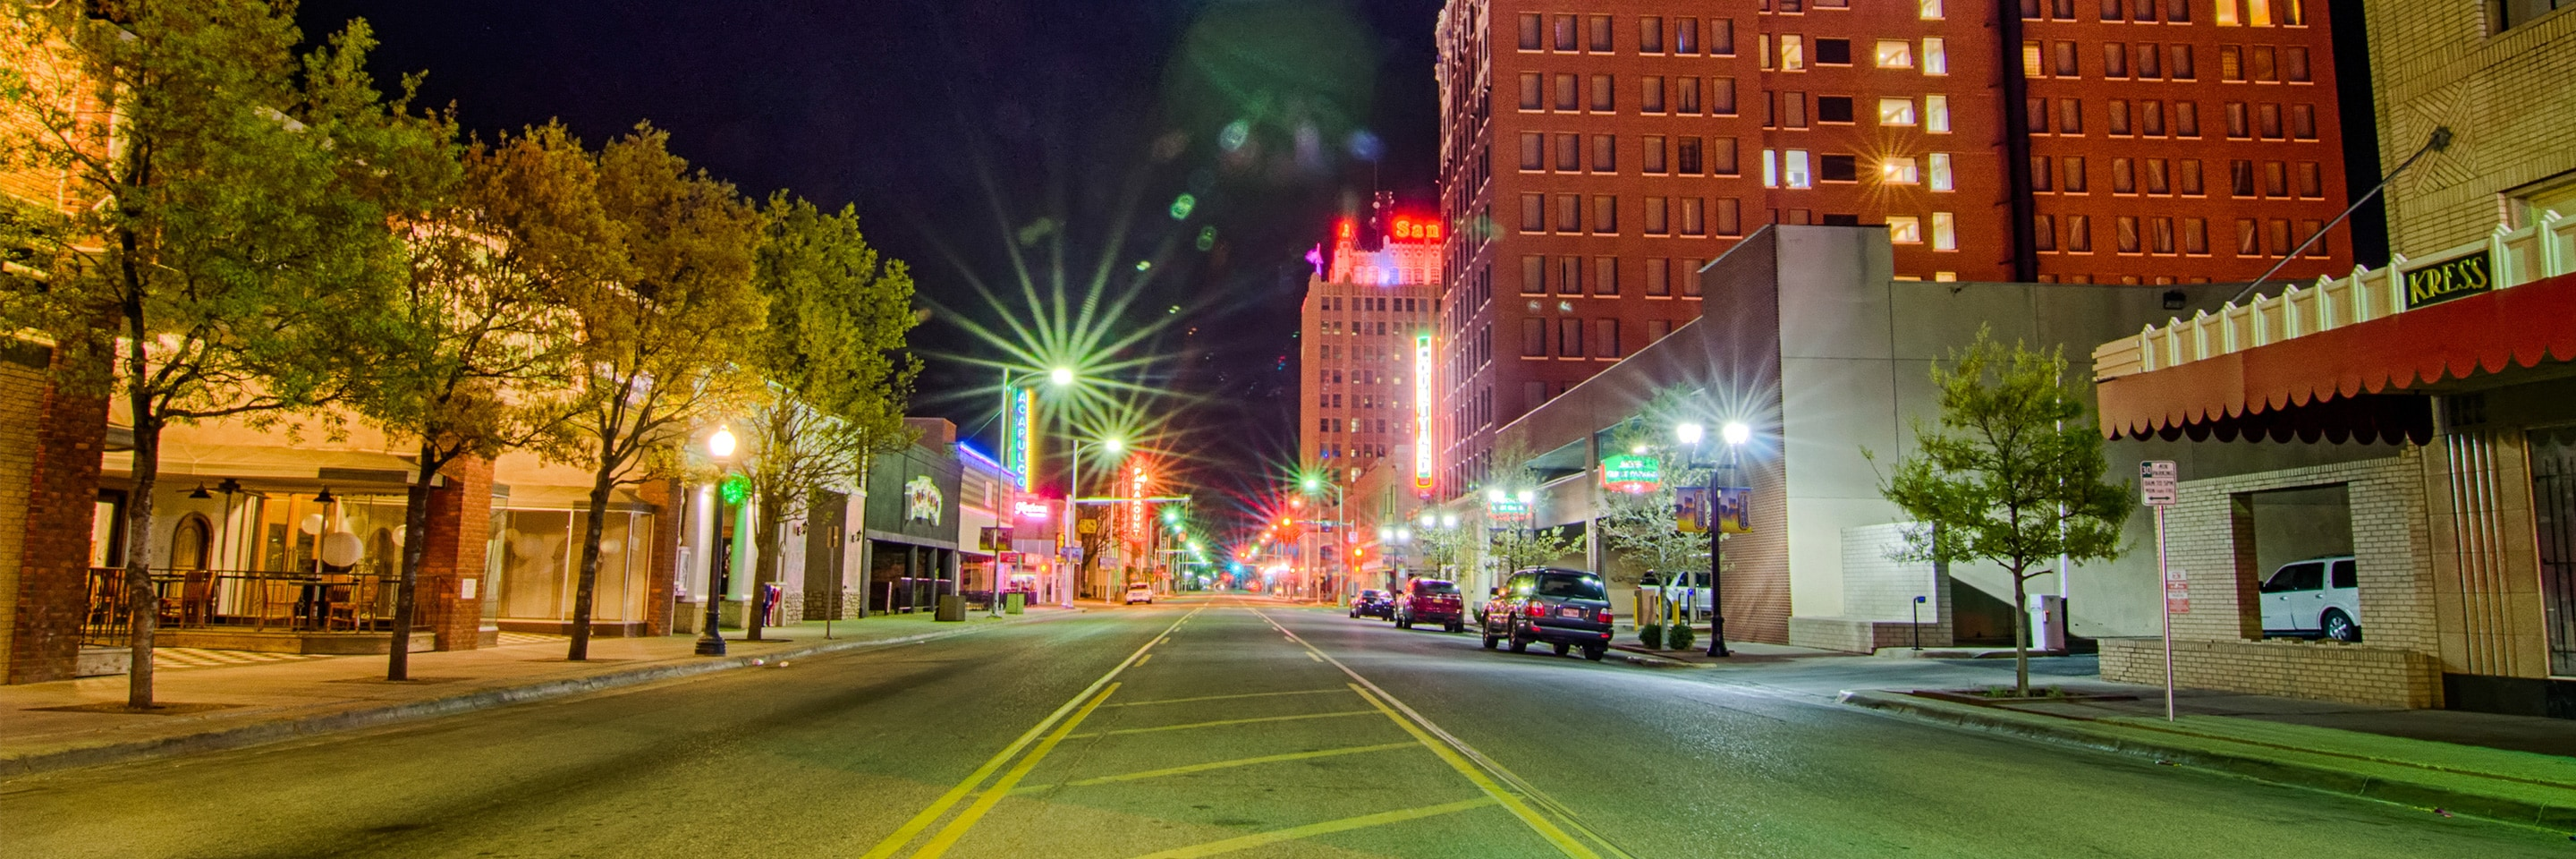 Hotels in Amarillo